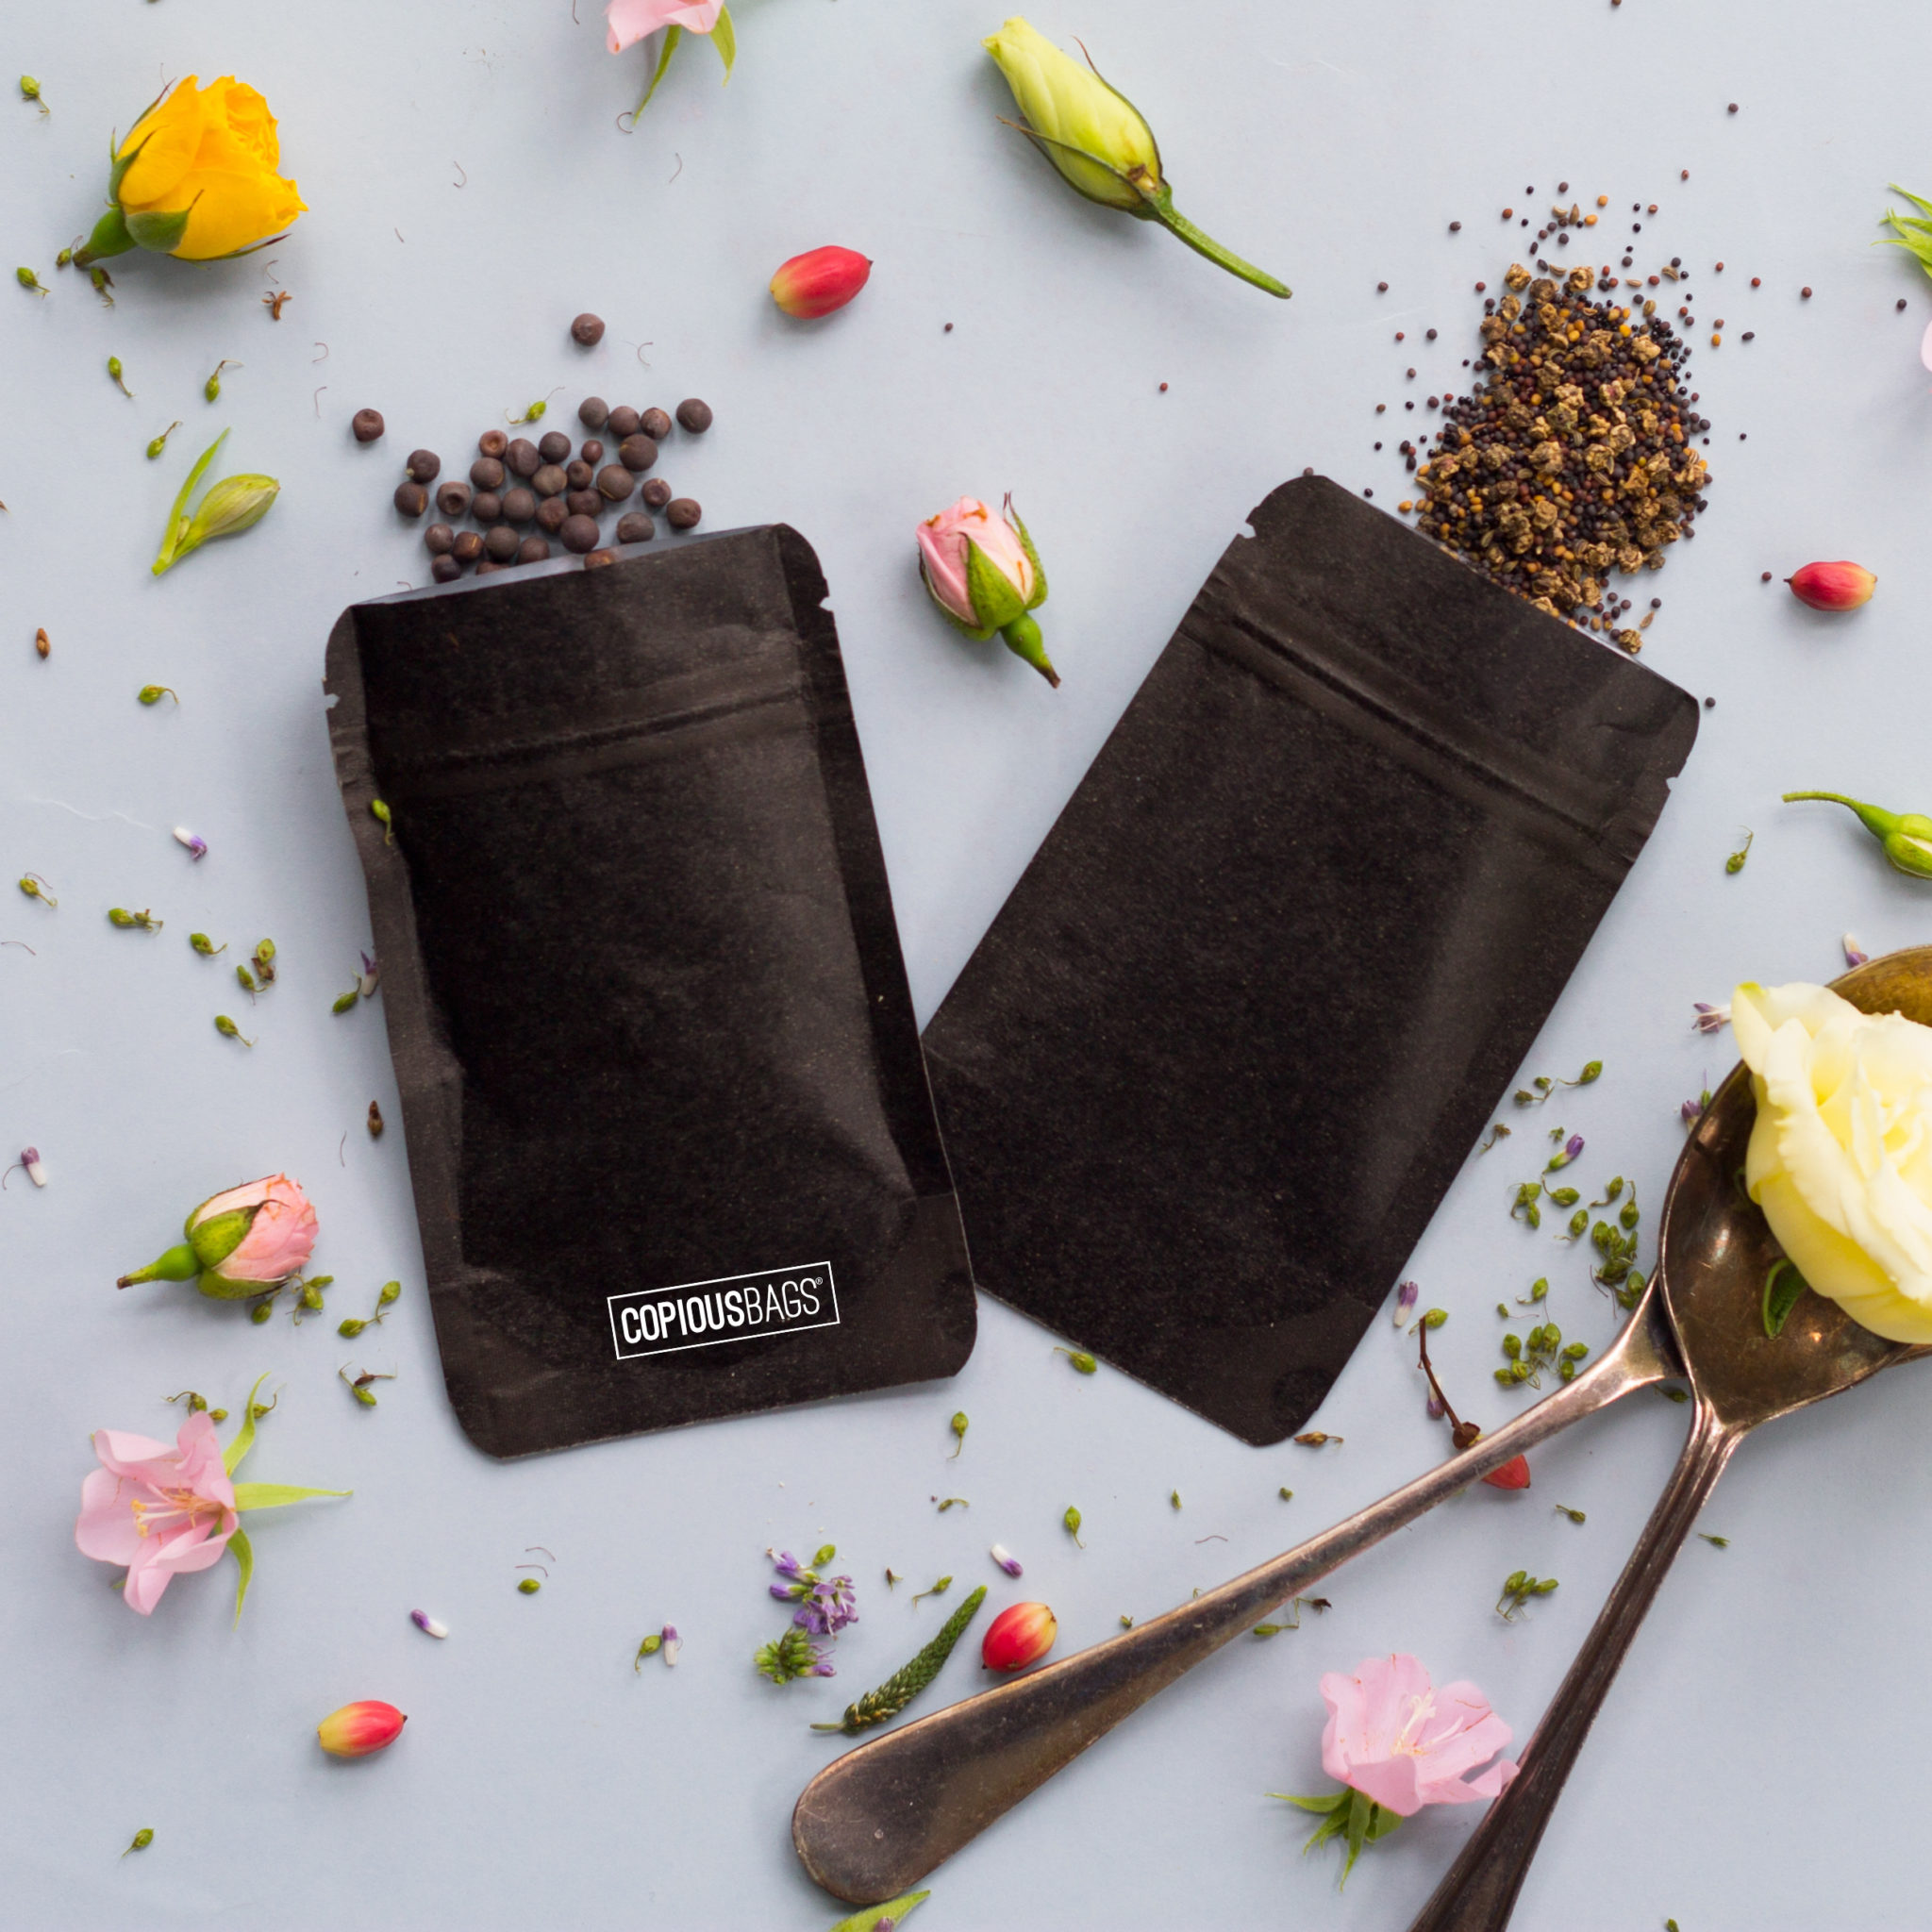 1 oz black kraft stand up pouch - herbs and spice packaging - Copious Bags®